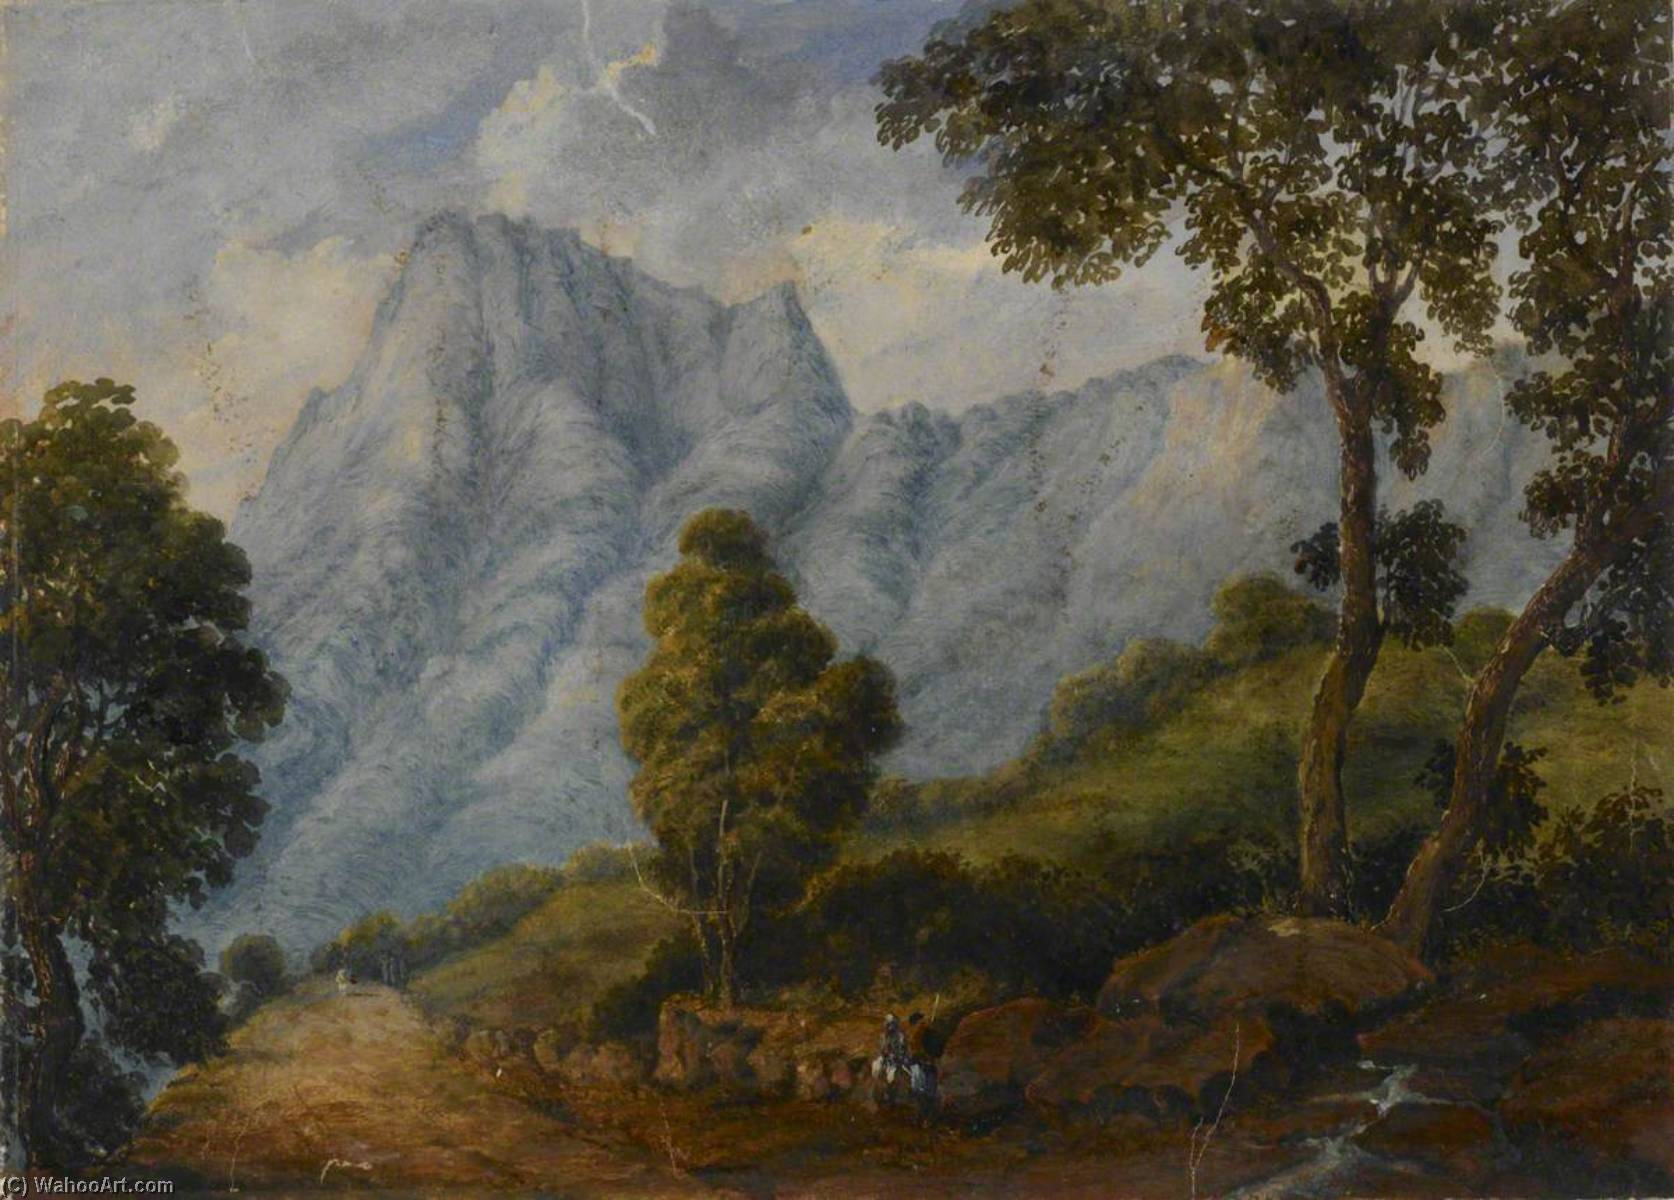 mont route  dans  rocheux  Paysage  Occidental  Ghâts , Huile de William Robert Houghton